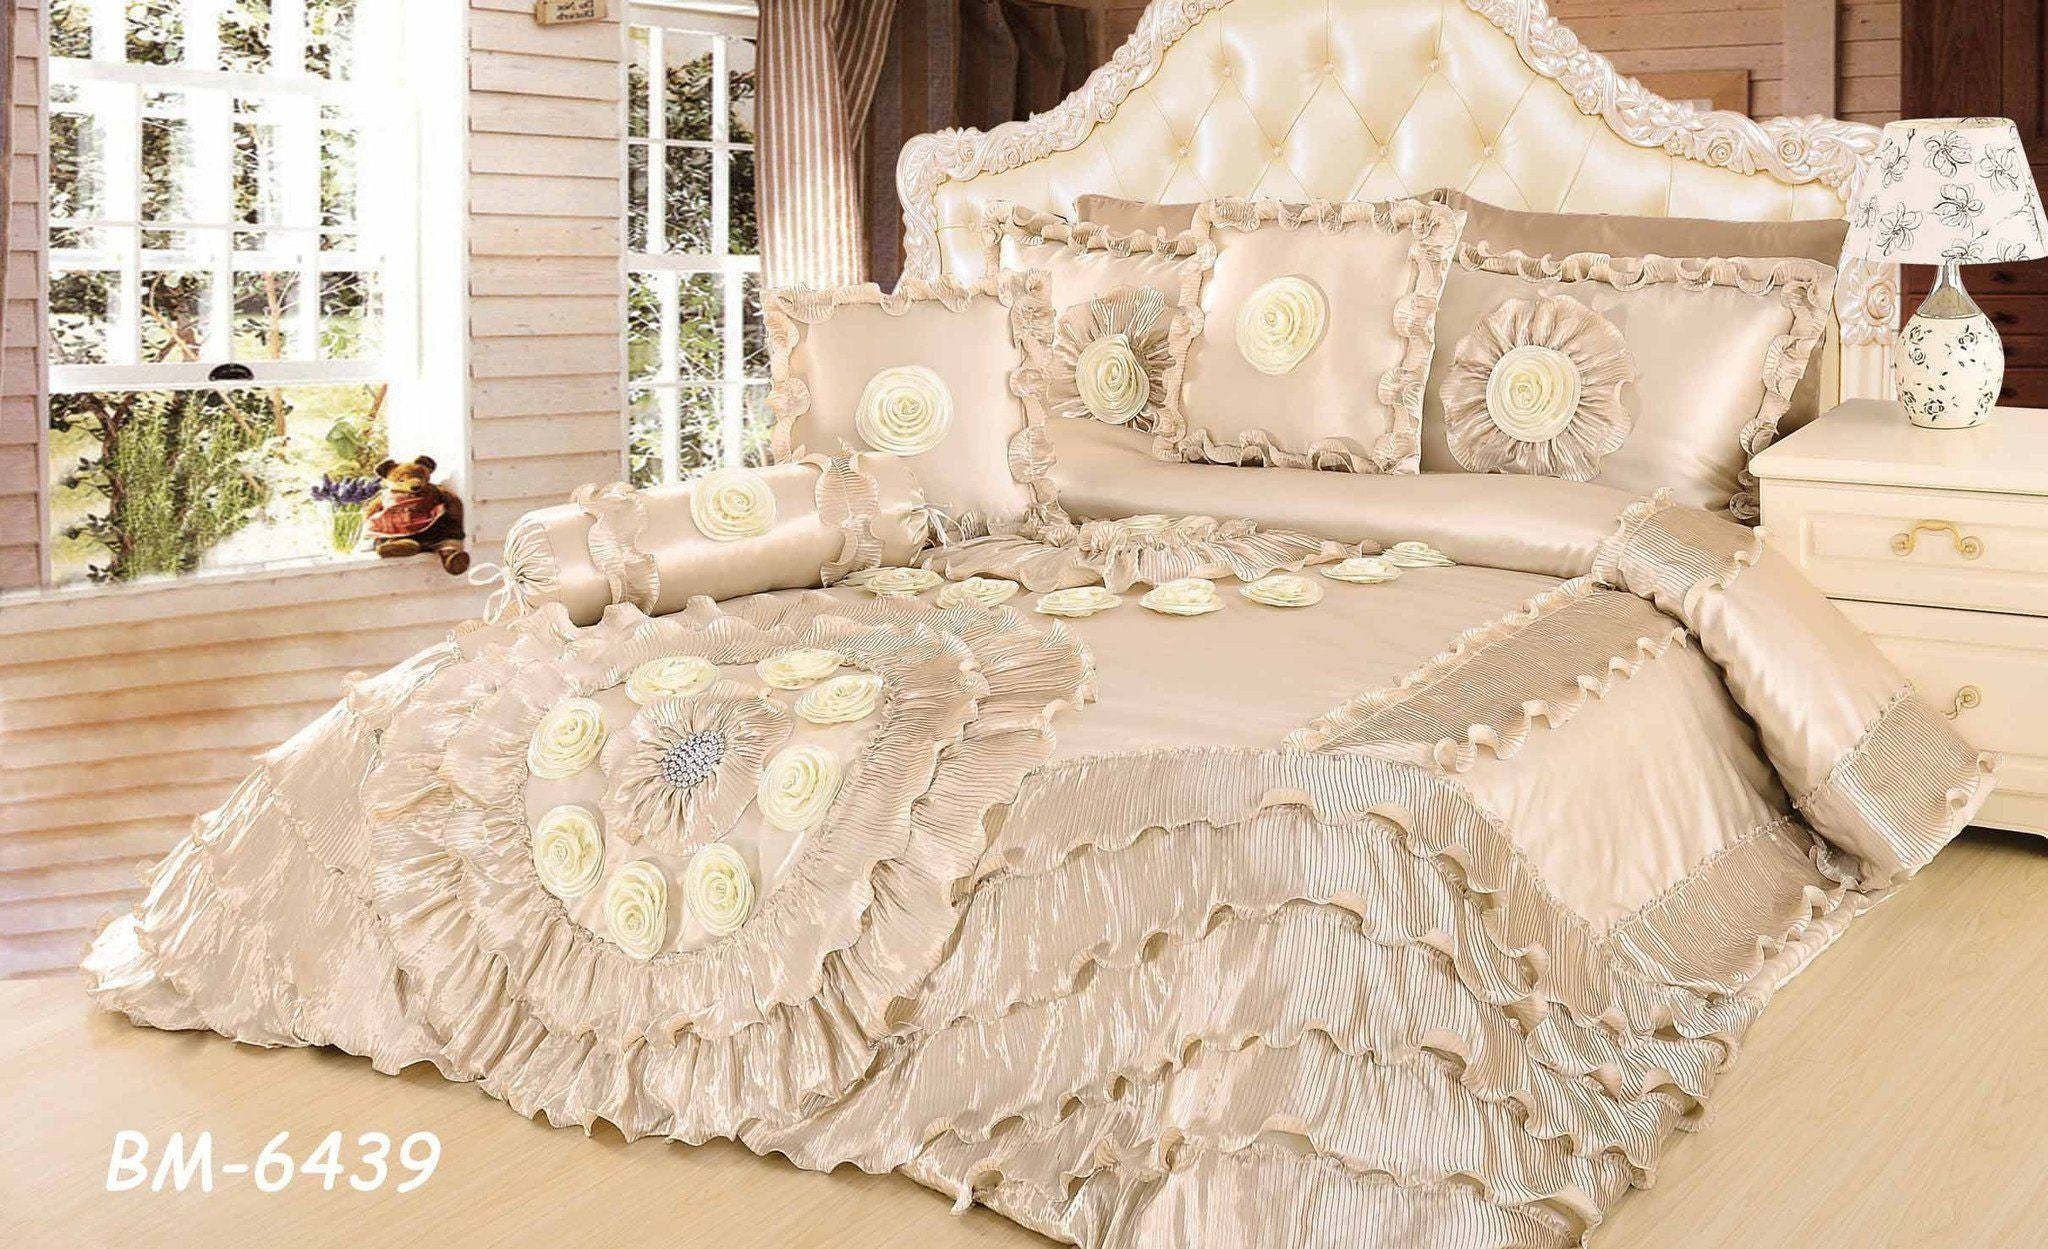 bed brown placed atlanta look comforter gray pattern sets with on light the wooden chic magazine cream set mesmerezing bedding king cal white online floral